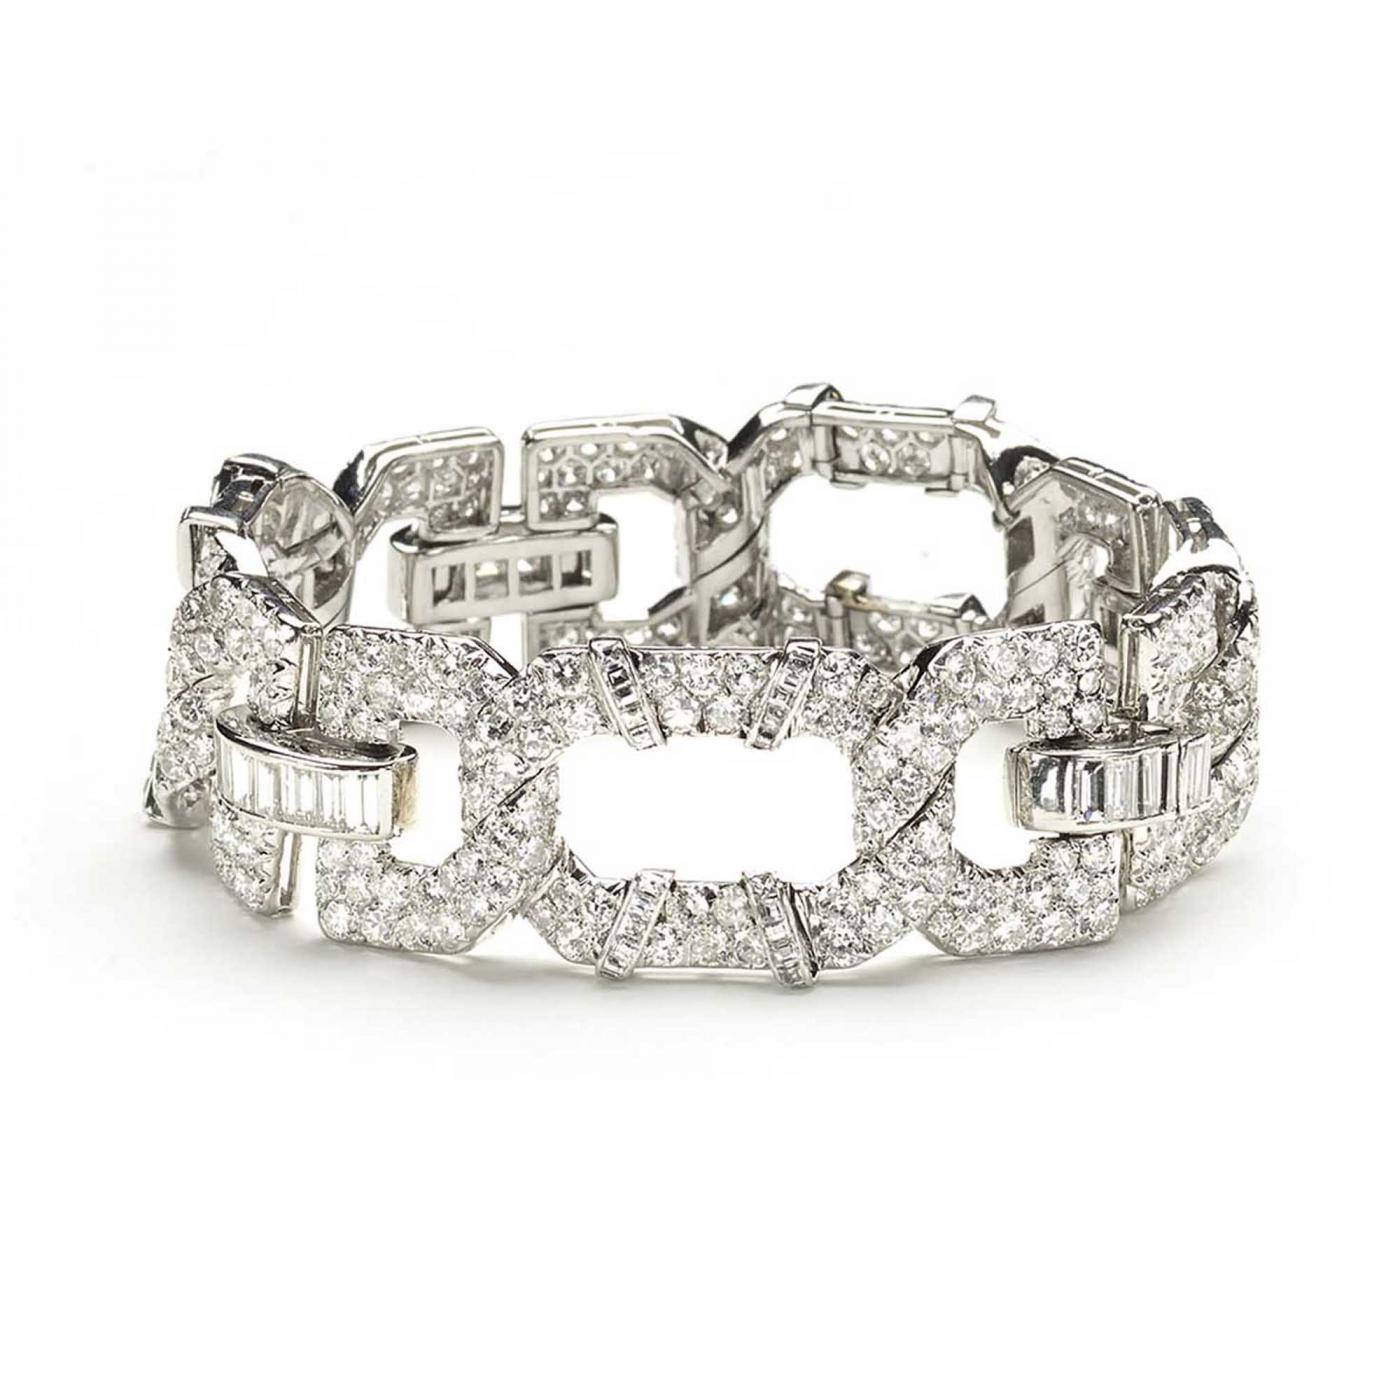 Cartier Cartier Art Deco Diamond Platinum Bracelet